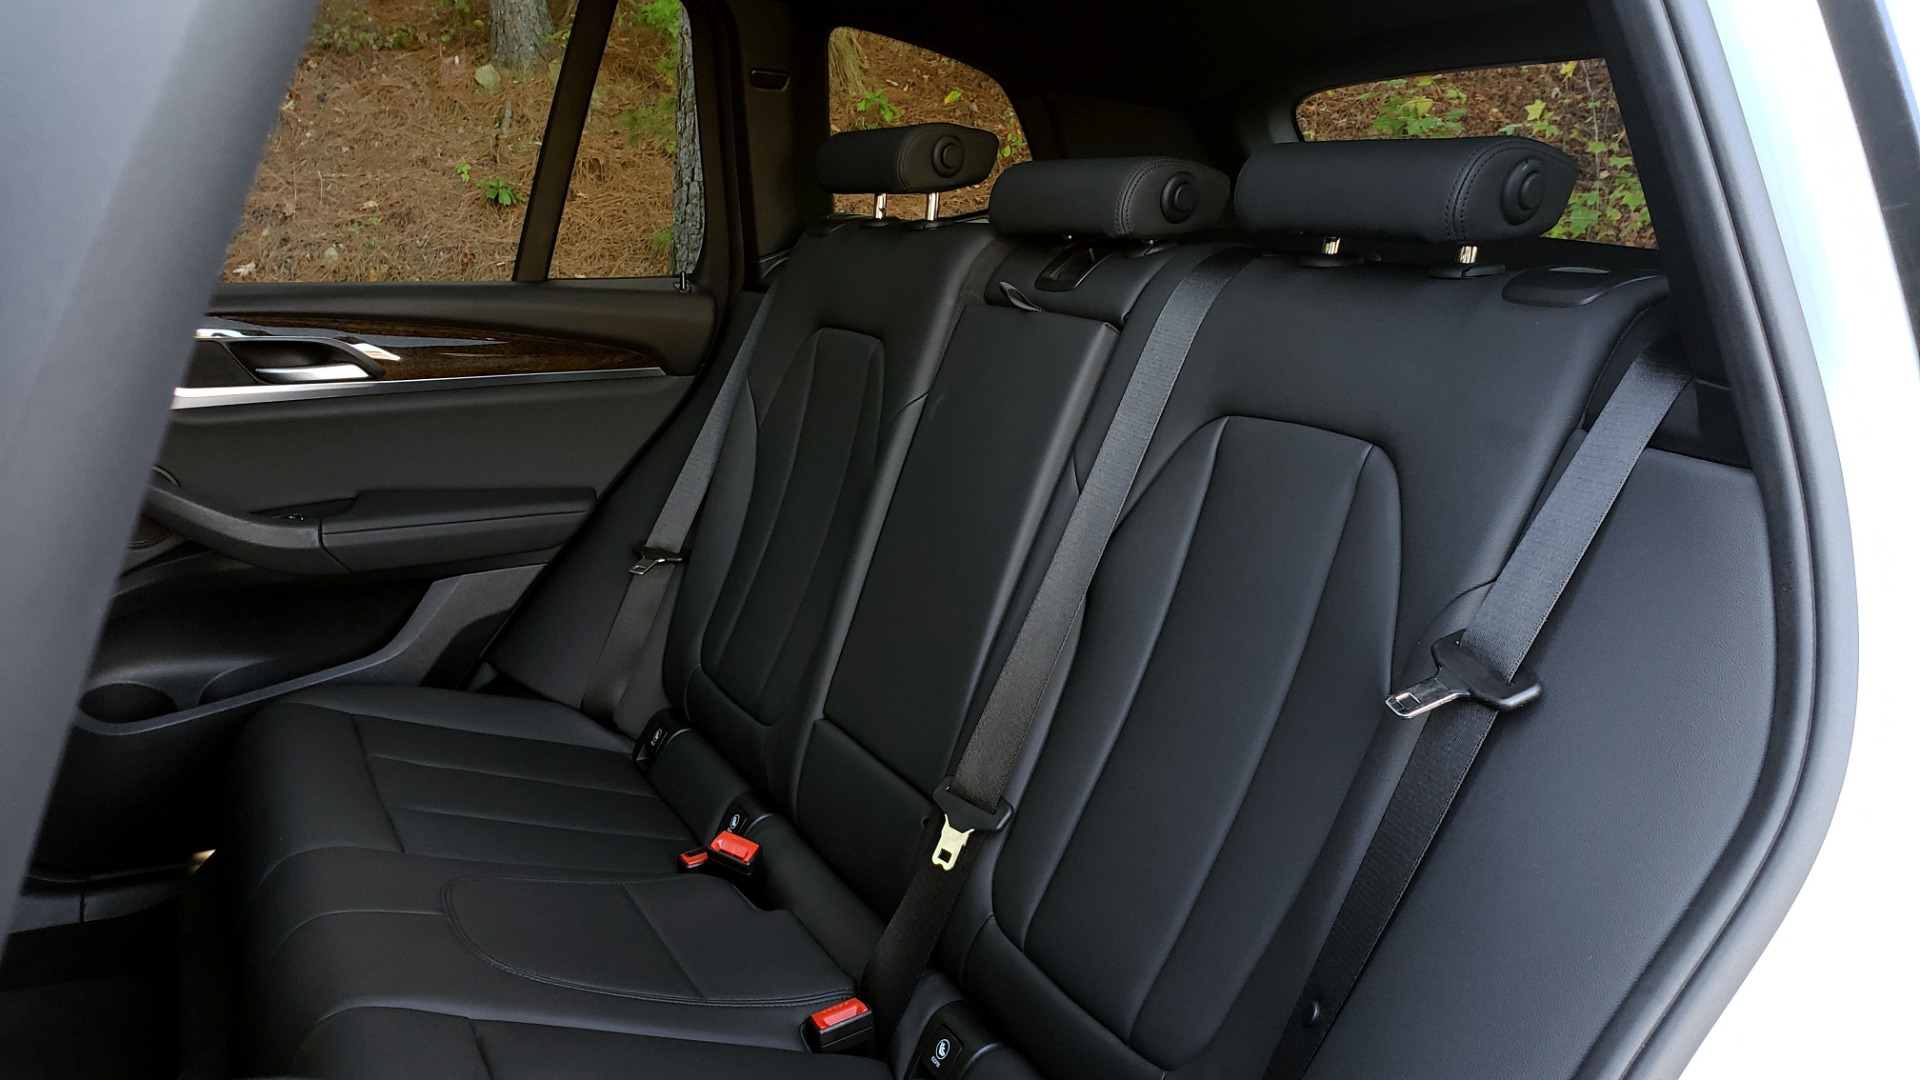 Used 2019 BMW X3 XDRIVE30I / DRVR ASST / PANO-ROOF / HTD STS / REARVIEW for sale $41,995 at Formula Imports in Charlotte NC 28227 66